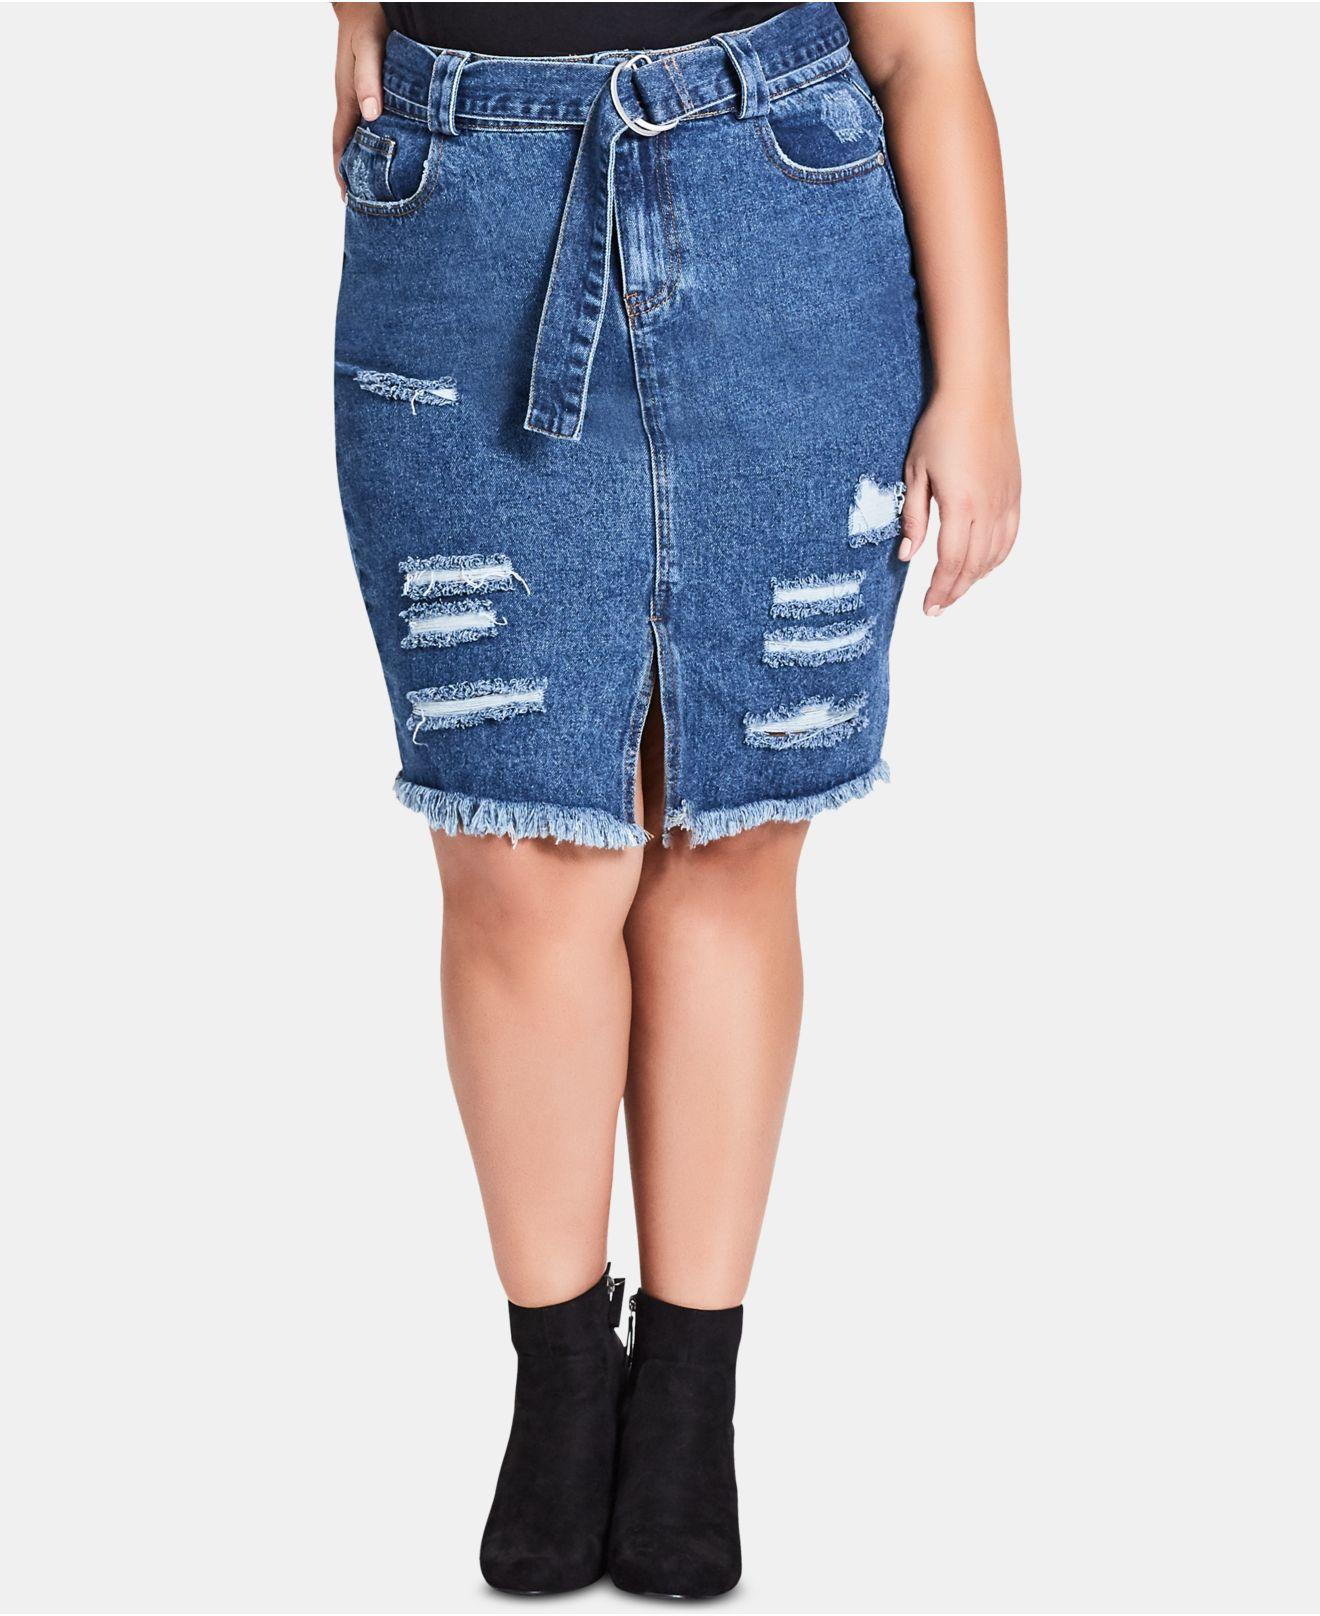 67c3028500d2a Lyst - City Chic Trendy Plus Size Cotton Ripped Denim Skirt in Blue